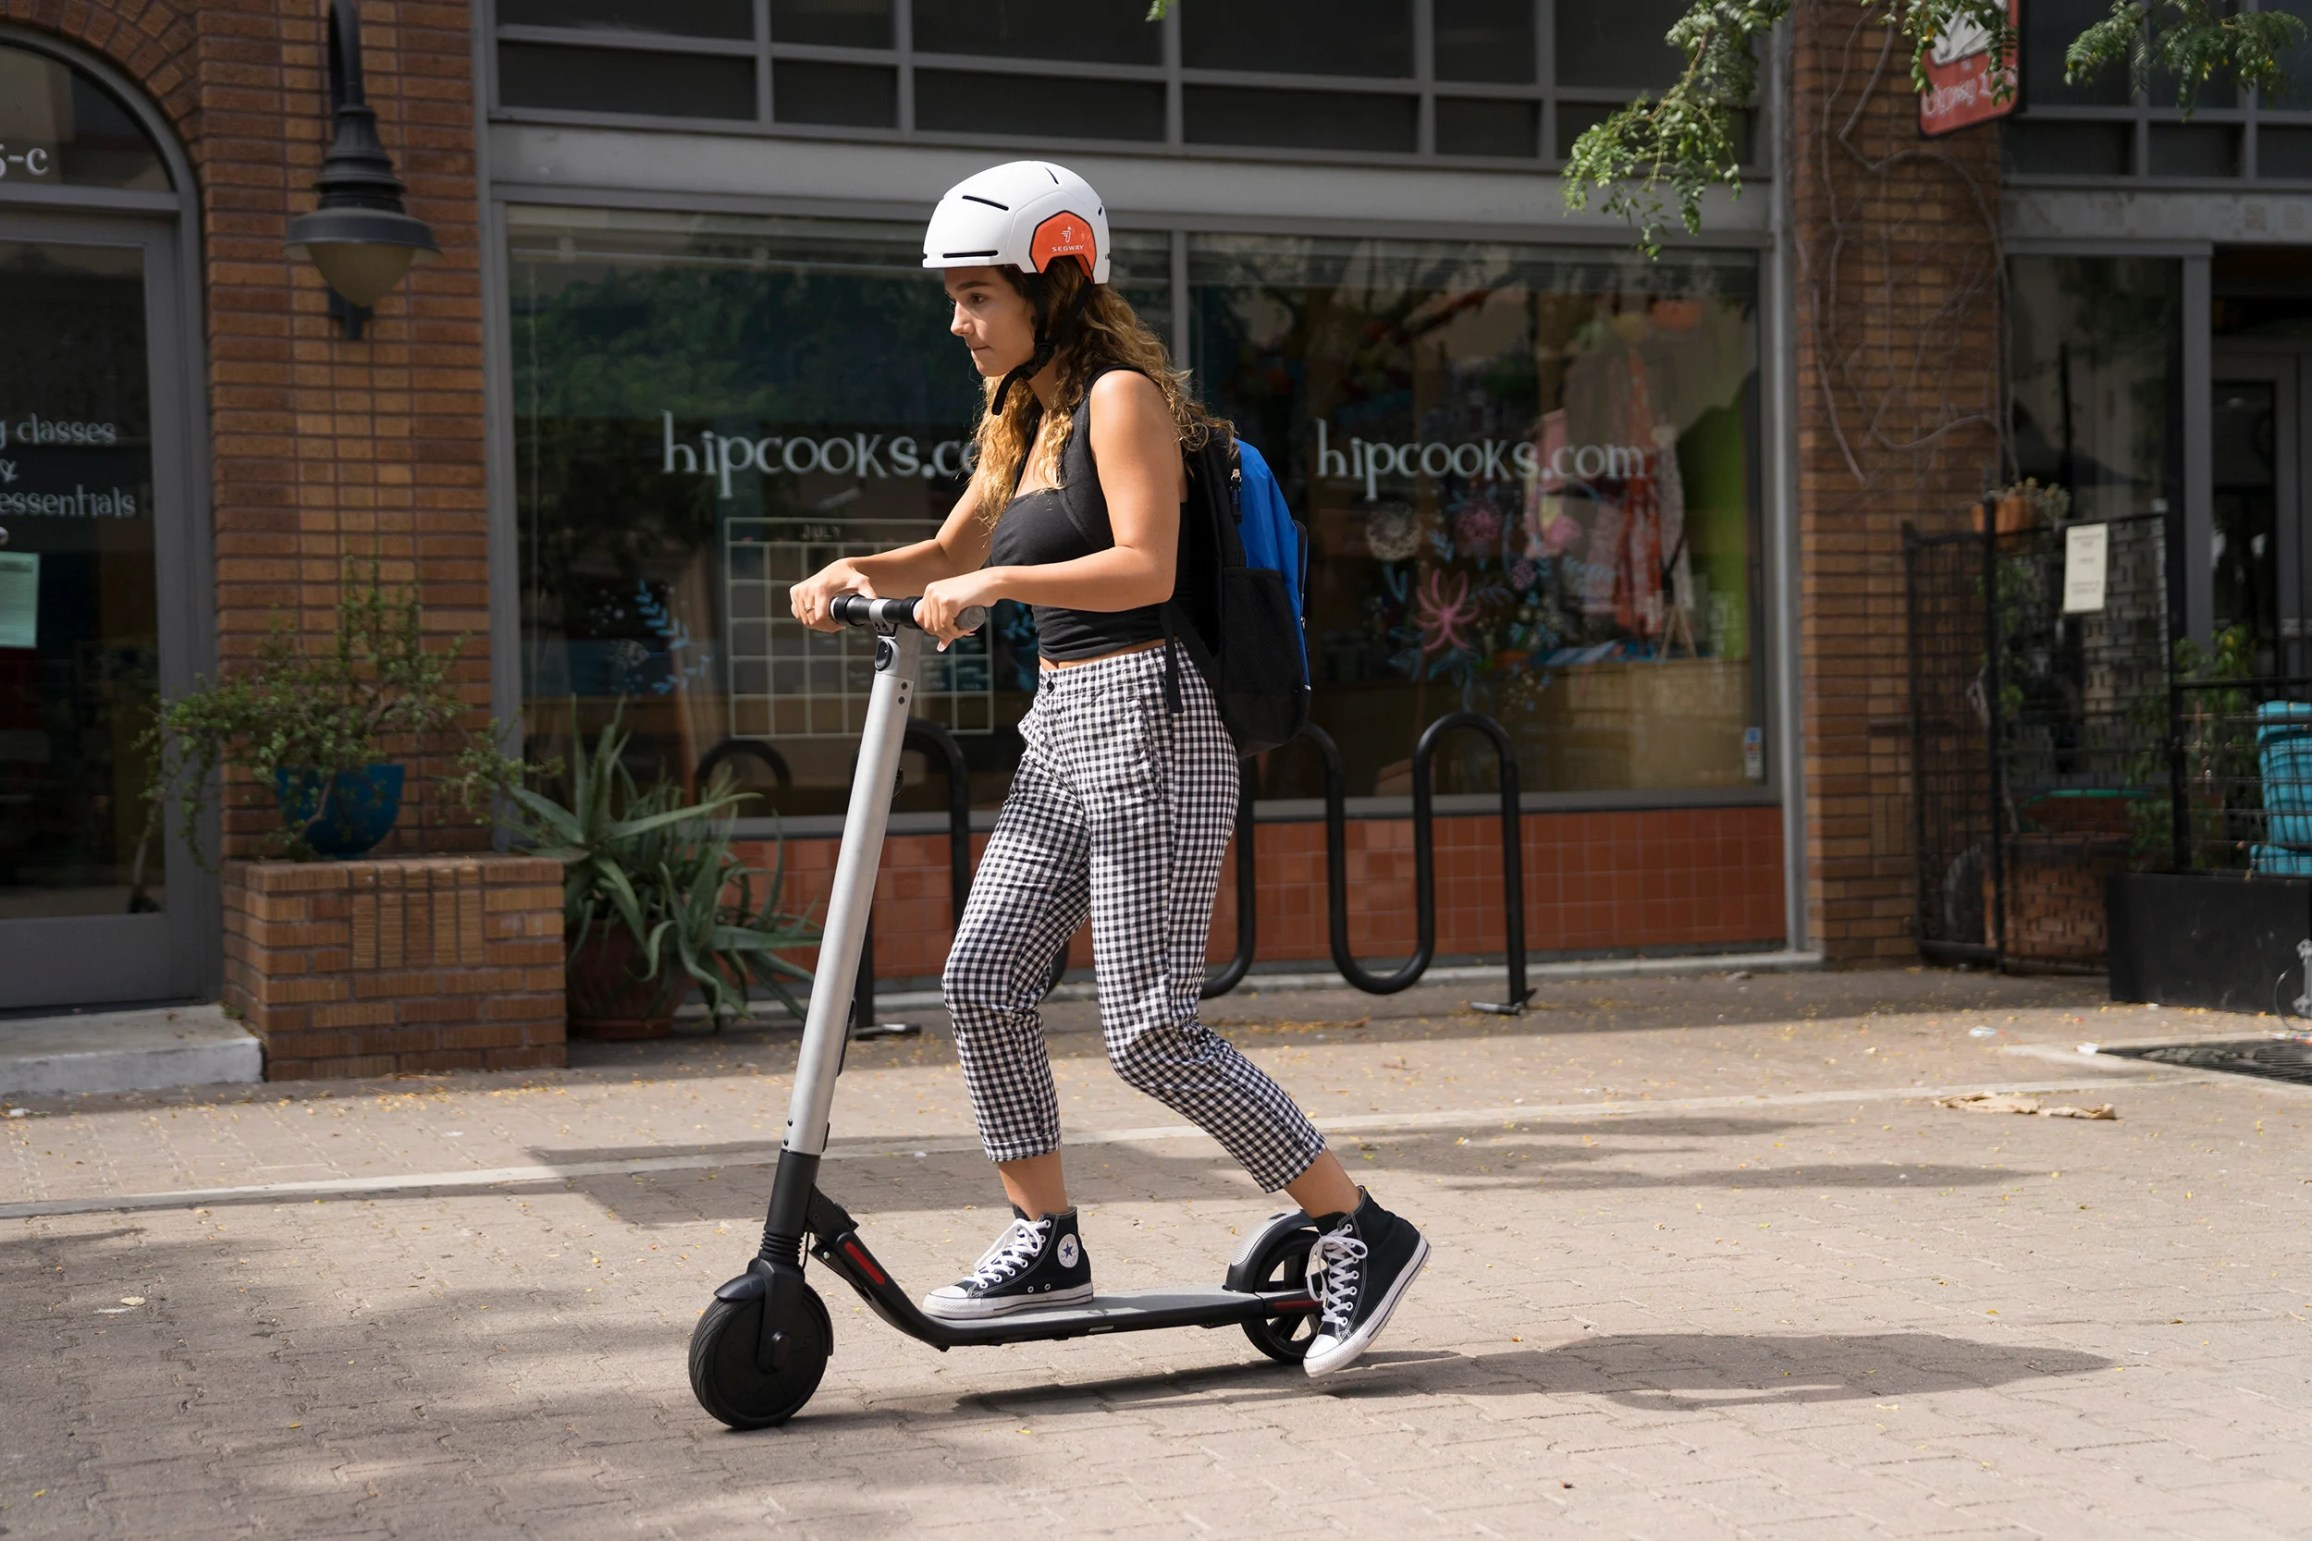 segway es2 with rider